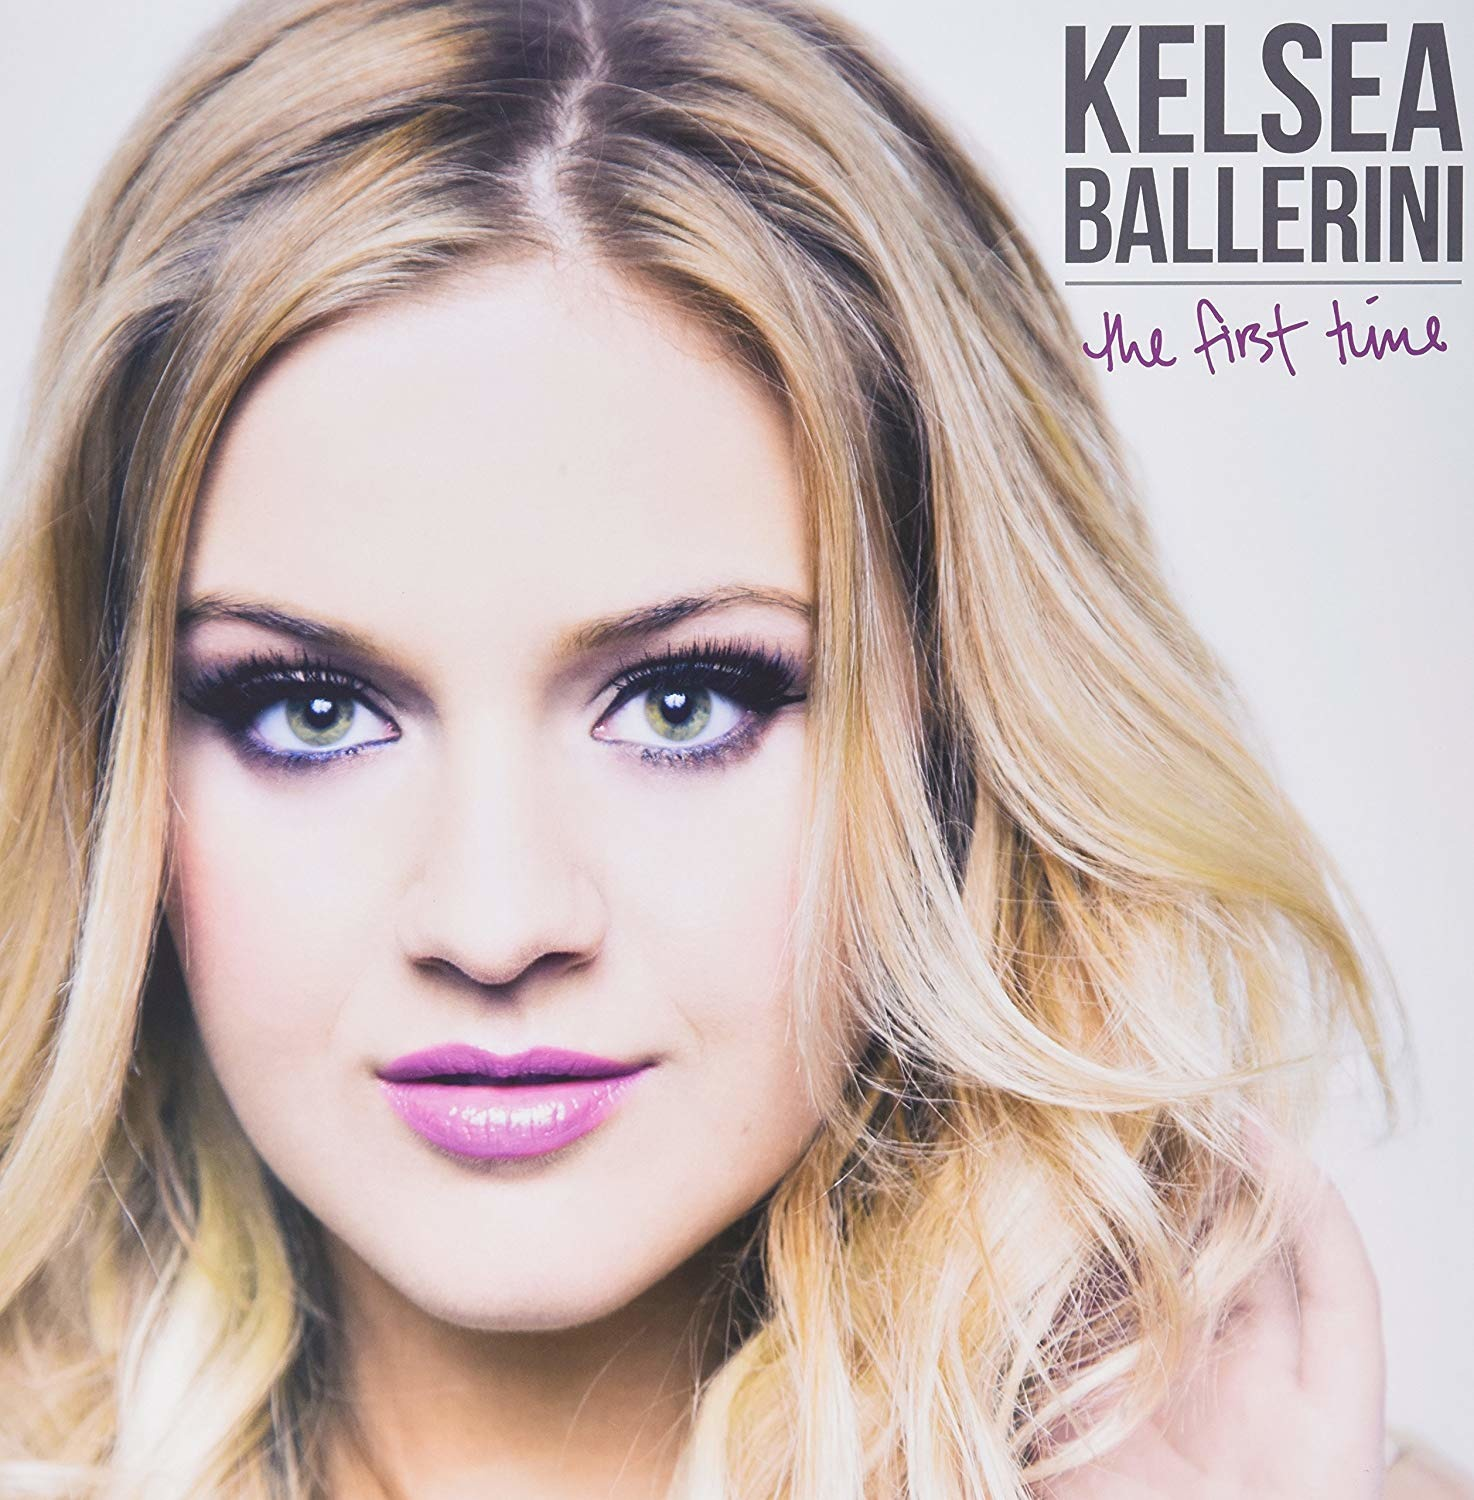 The First Time - Ballerini Kelsea - Musik - SONY MUSIC - 0888751994225 - 1970